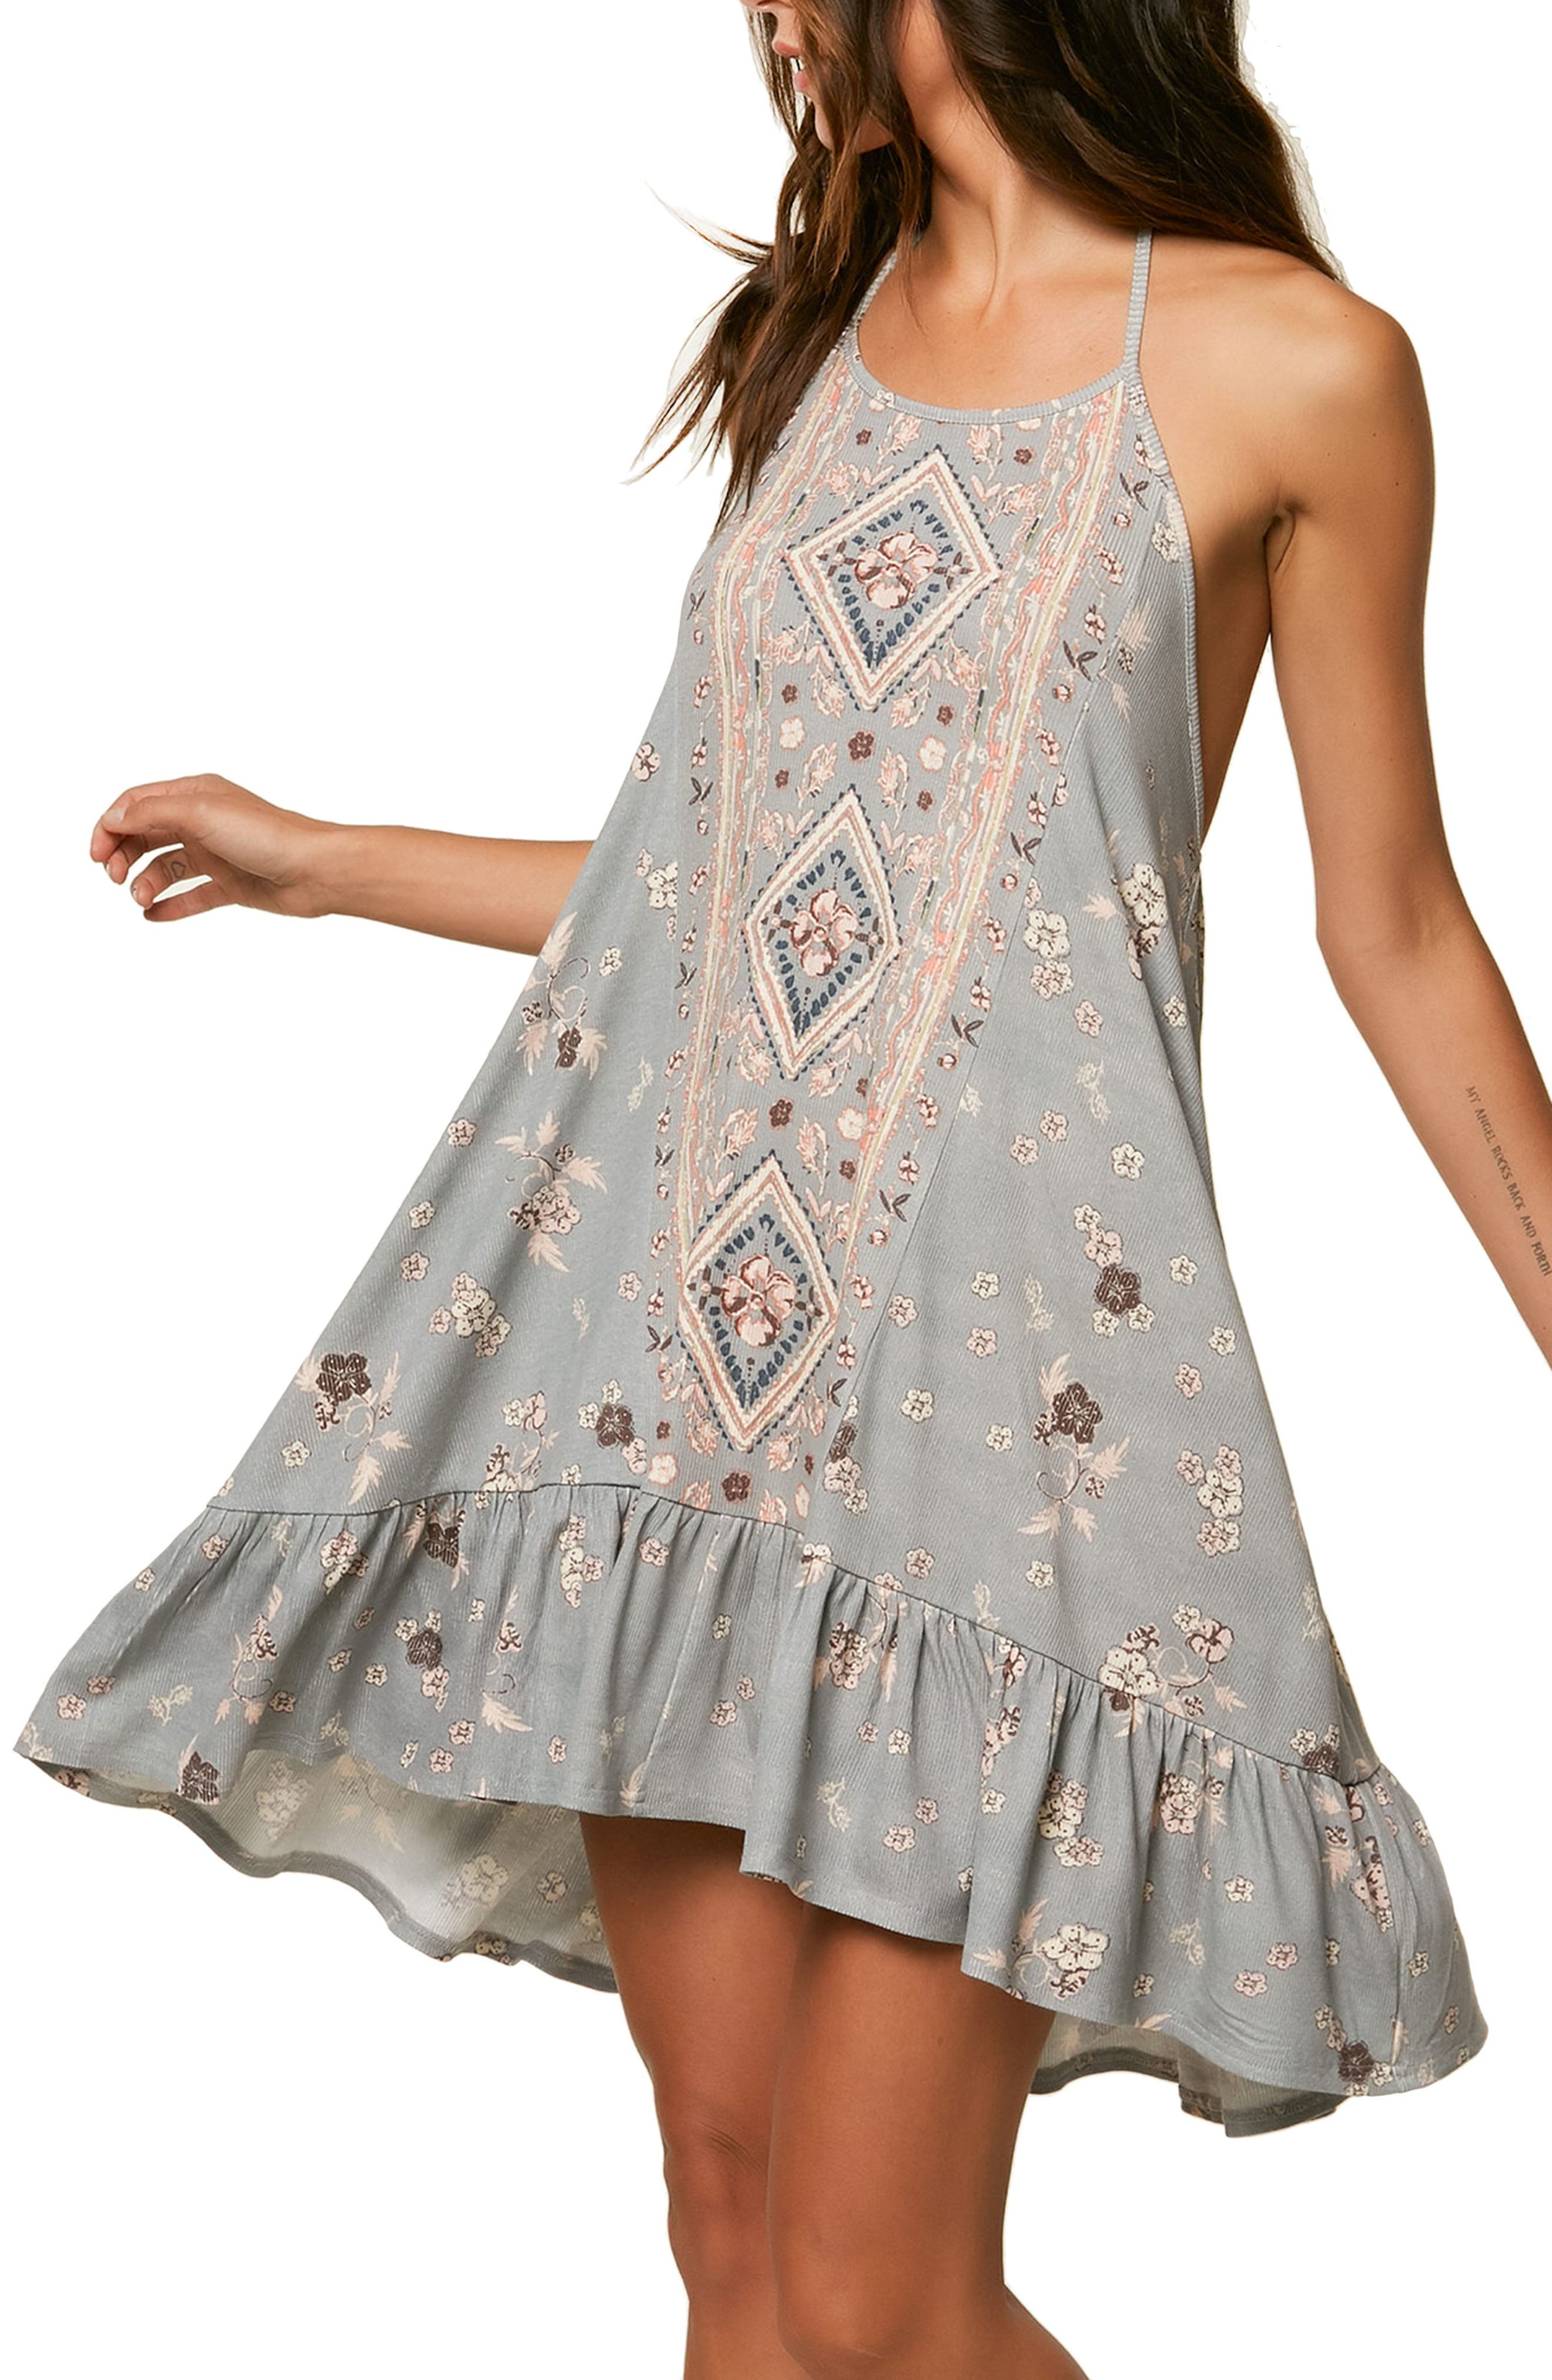 Sonoma Print Halter Dress,                         Main,                         color, NEUTRAL GRAY